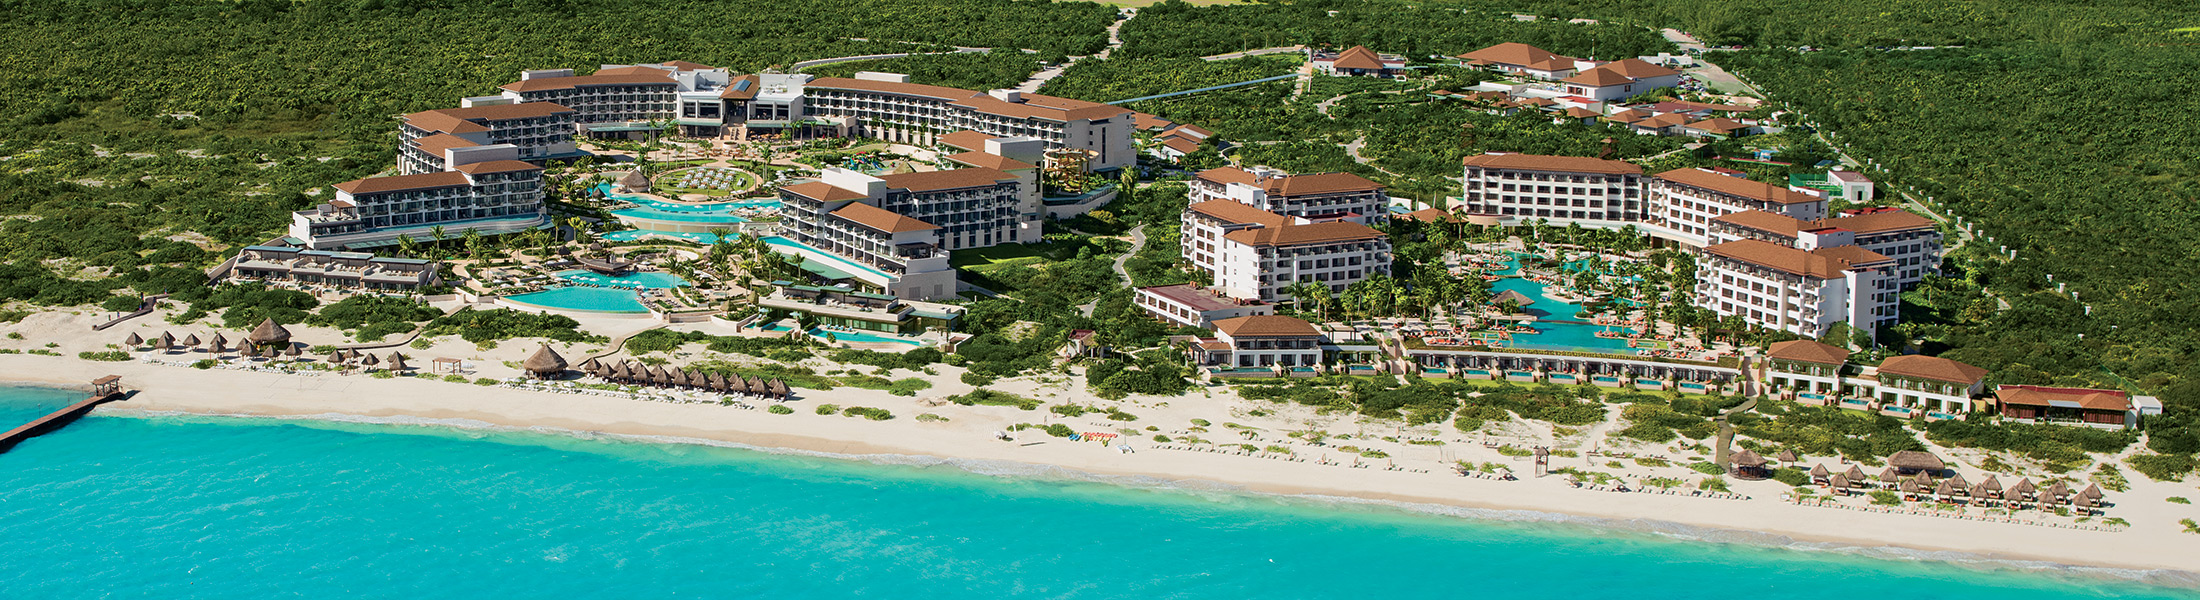 Aerial view of beach and Secrets Playa Mujeres